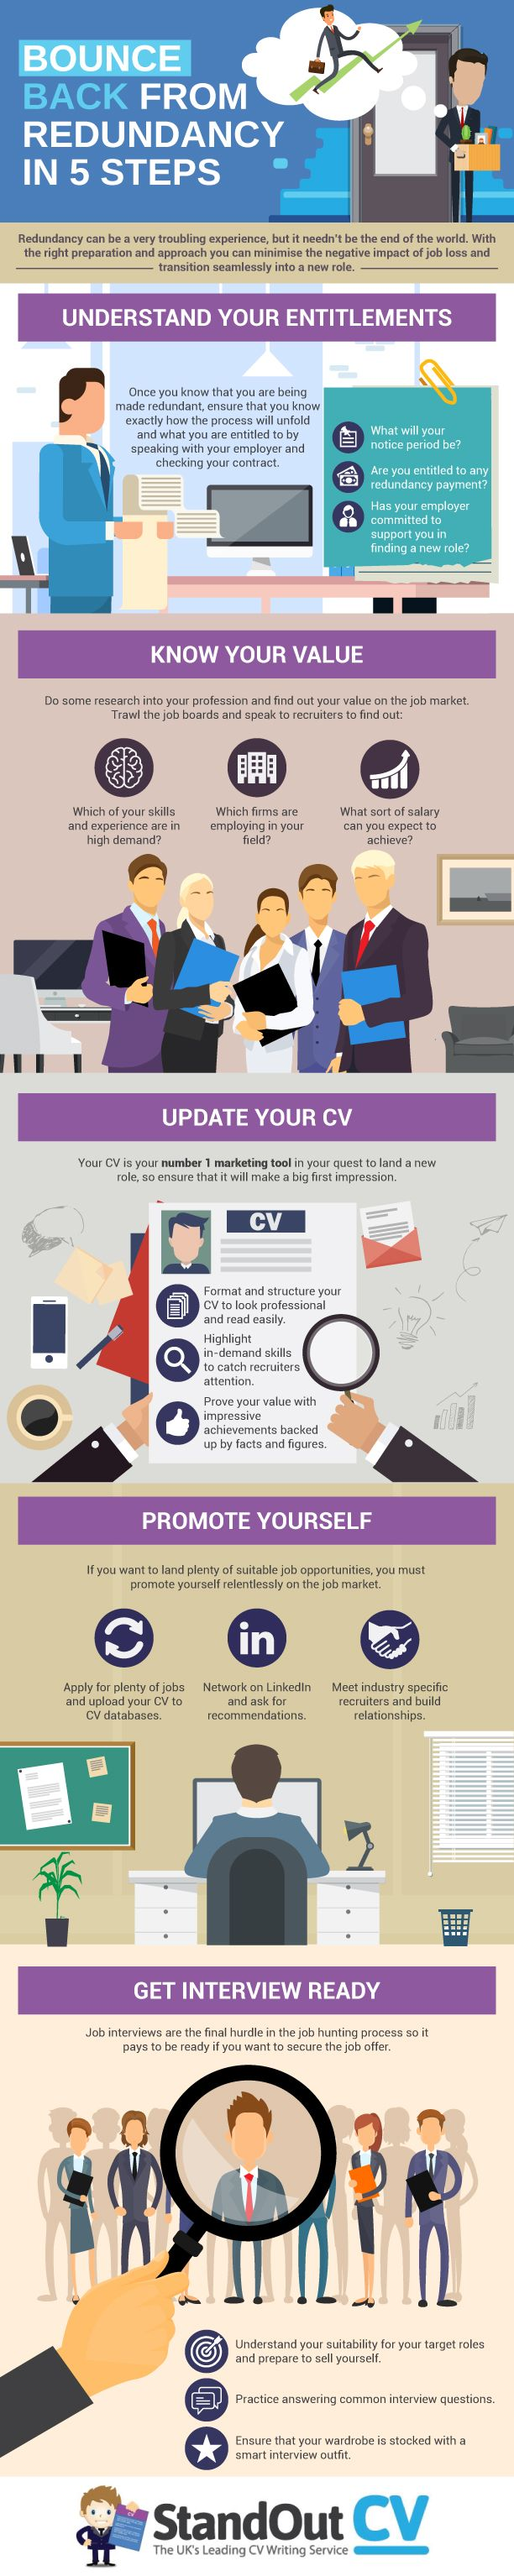 Bounce Back from Redundancy in 5 Steps #Infographic